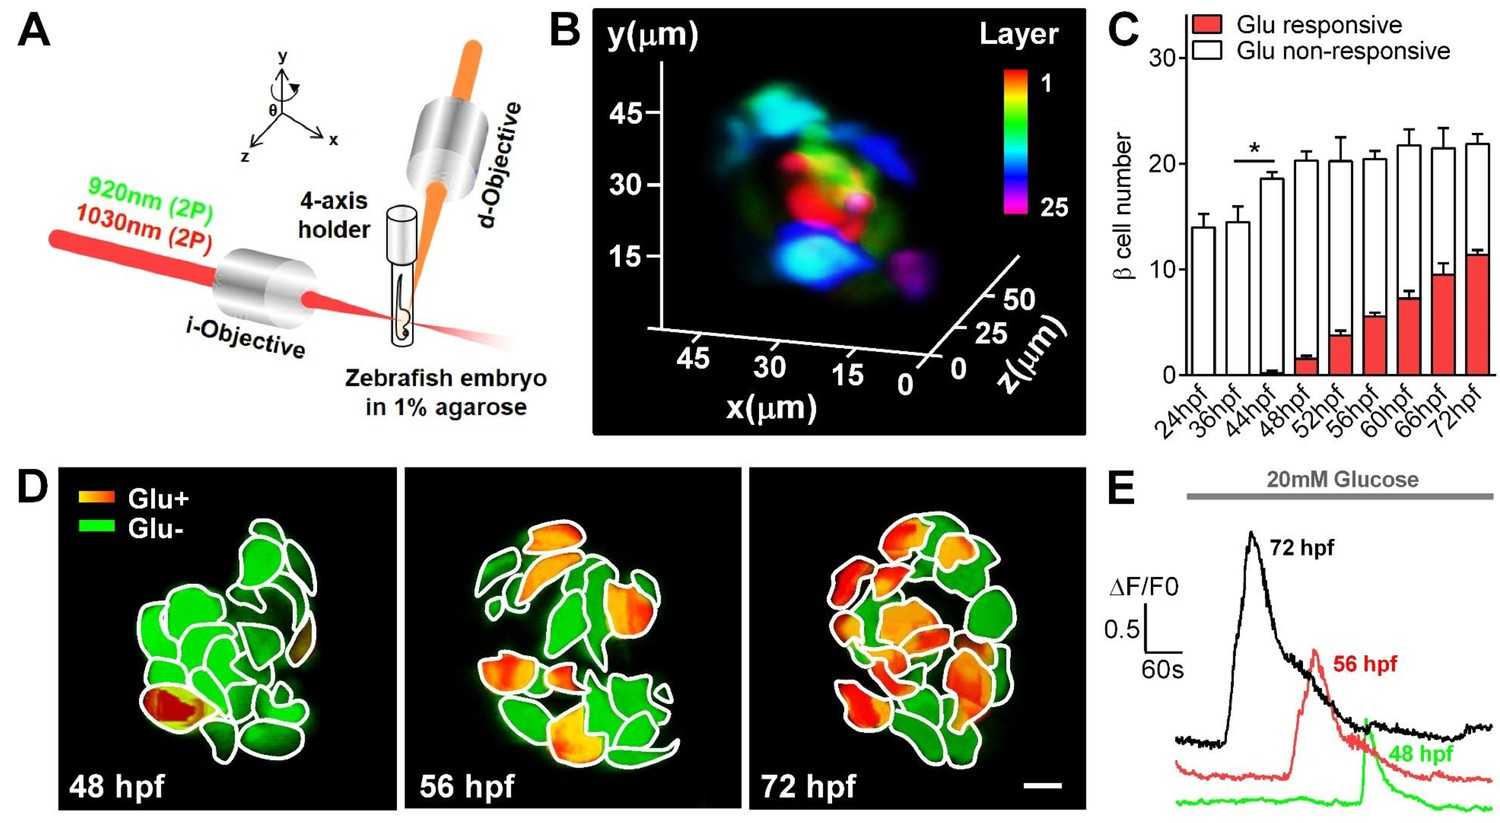 In vivo imaging of β-cell function reveals glucose-mediated